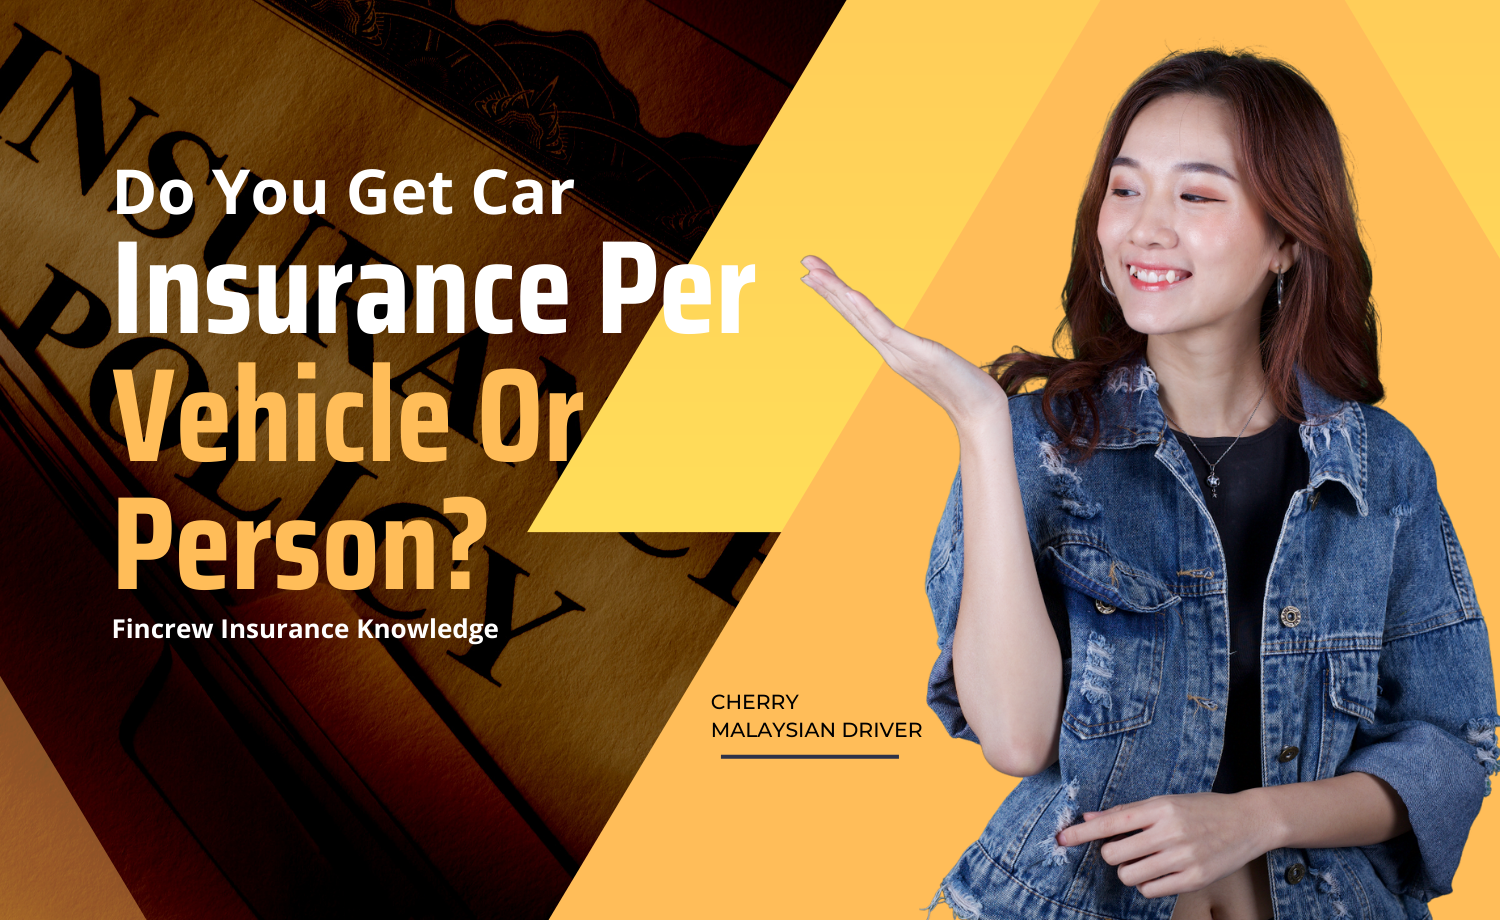 Do You Get Car Insurance Per Vehicle Or Person Blog Featured Image